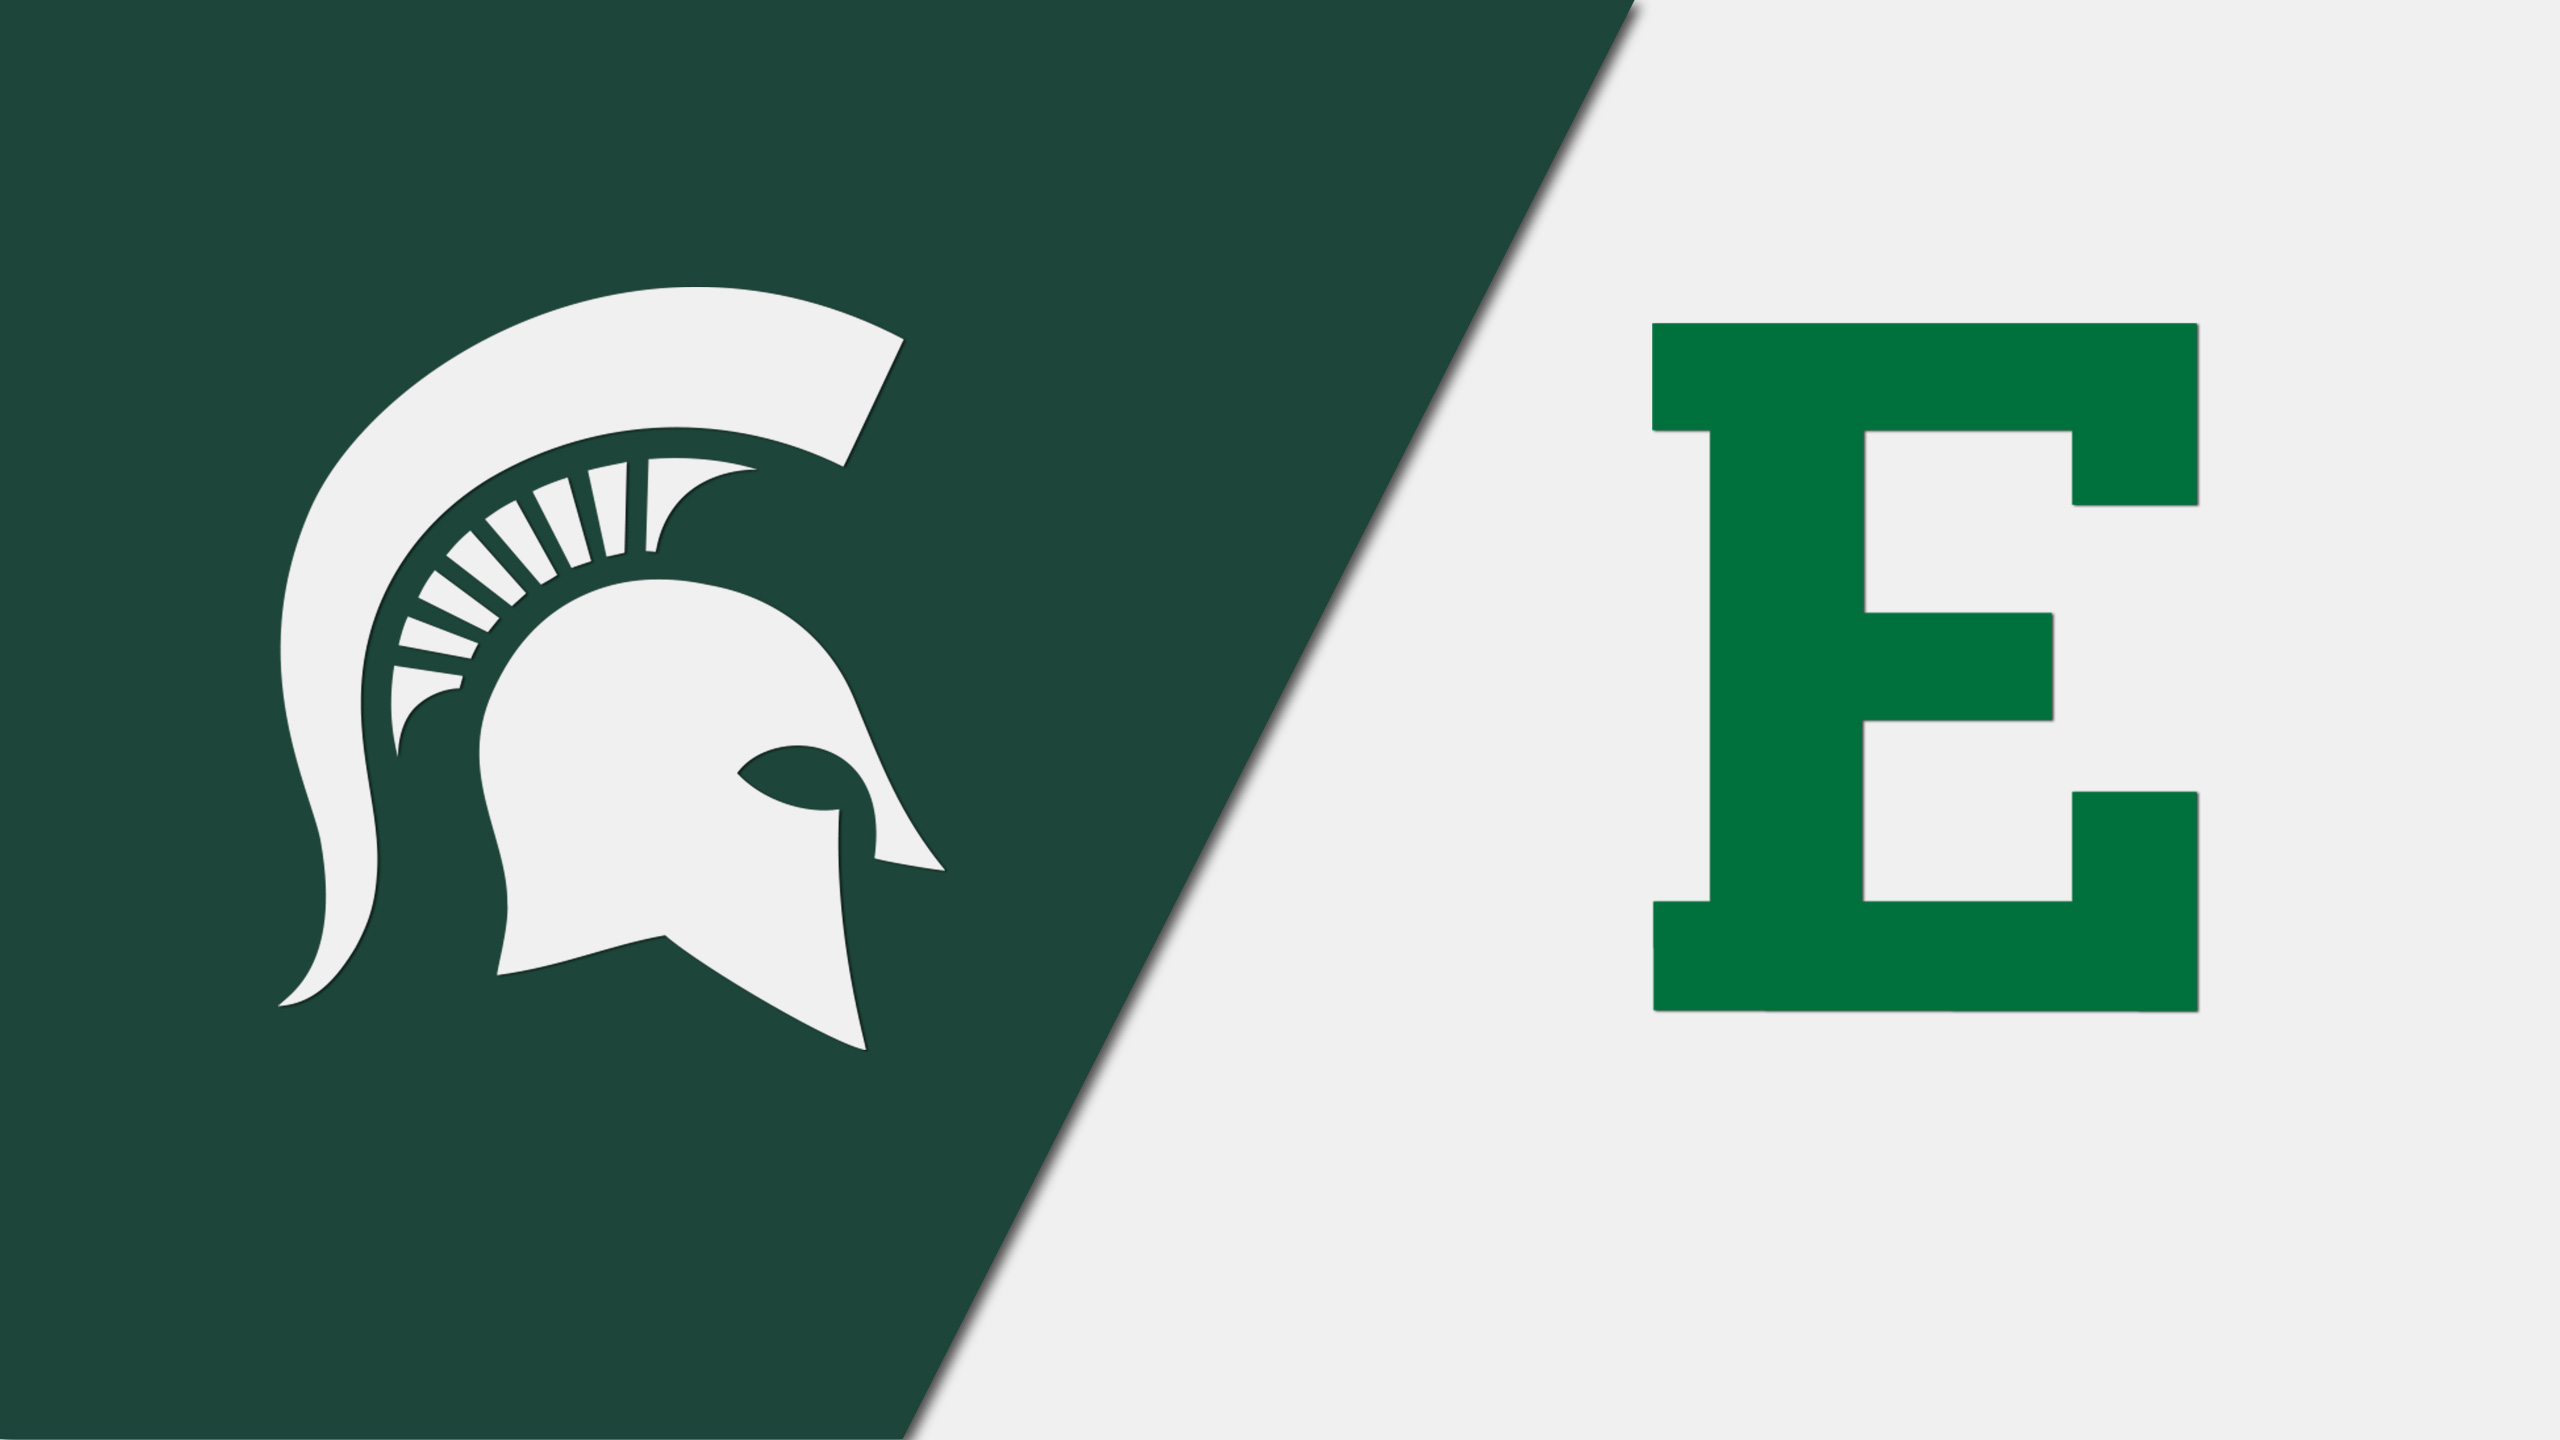 Michigan State vs. Eastern Michigan